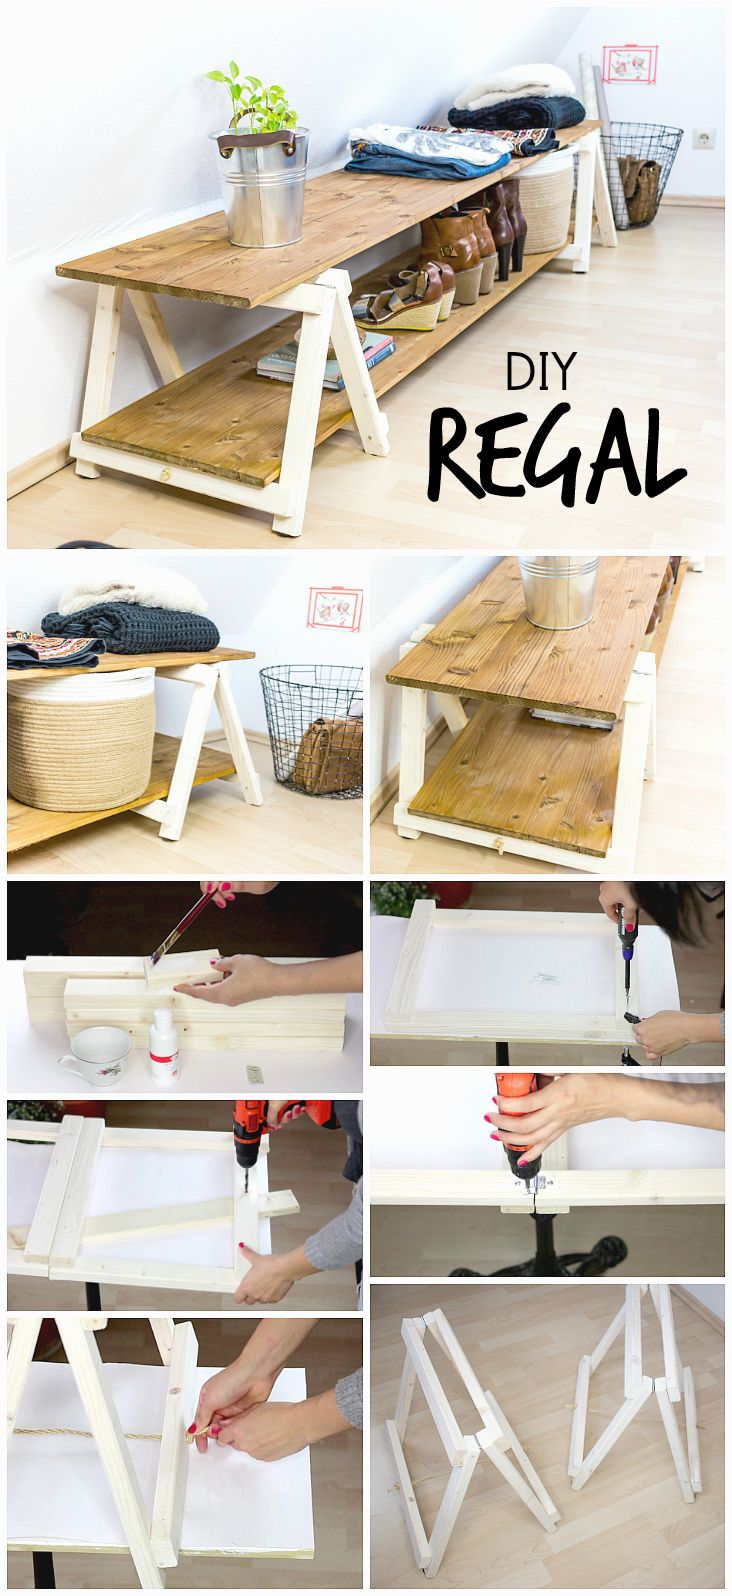 diy regal regal bauen mit mini klappb cken pinterest selber machen regal regal selber. Black Bedroom Furniture Sets. Home Design Ideas